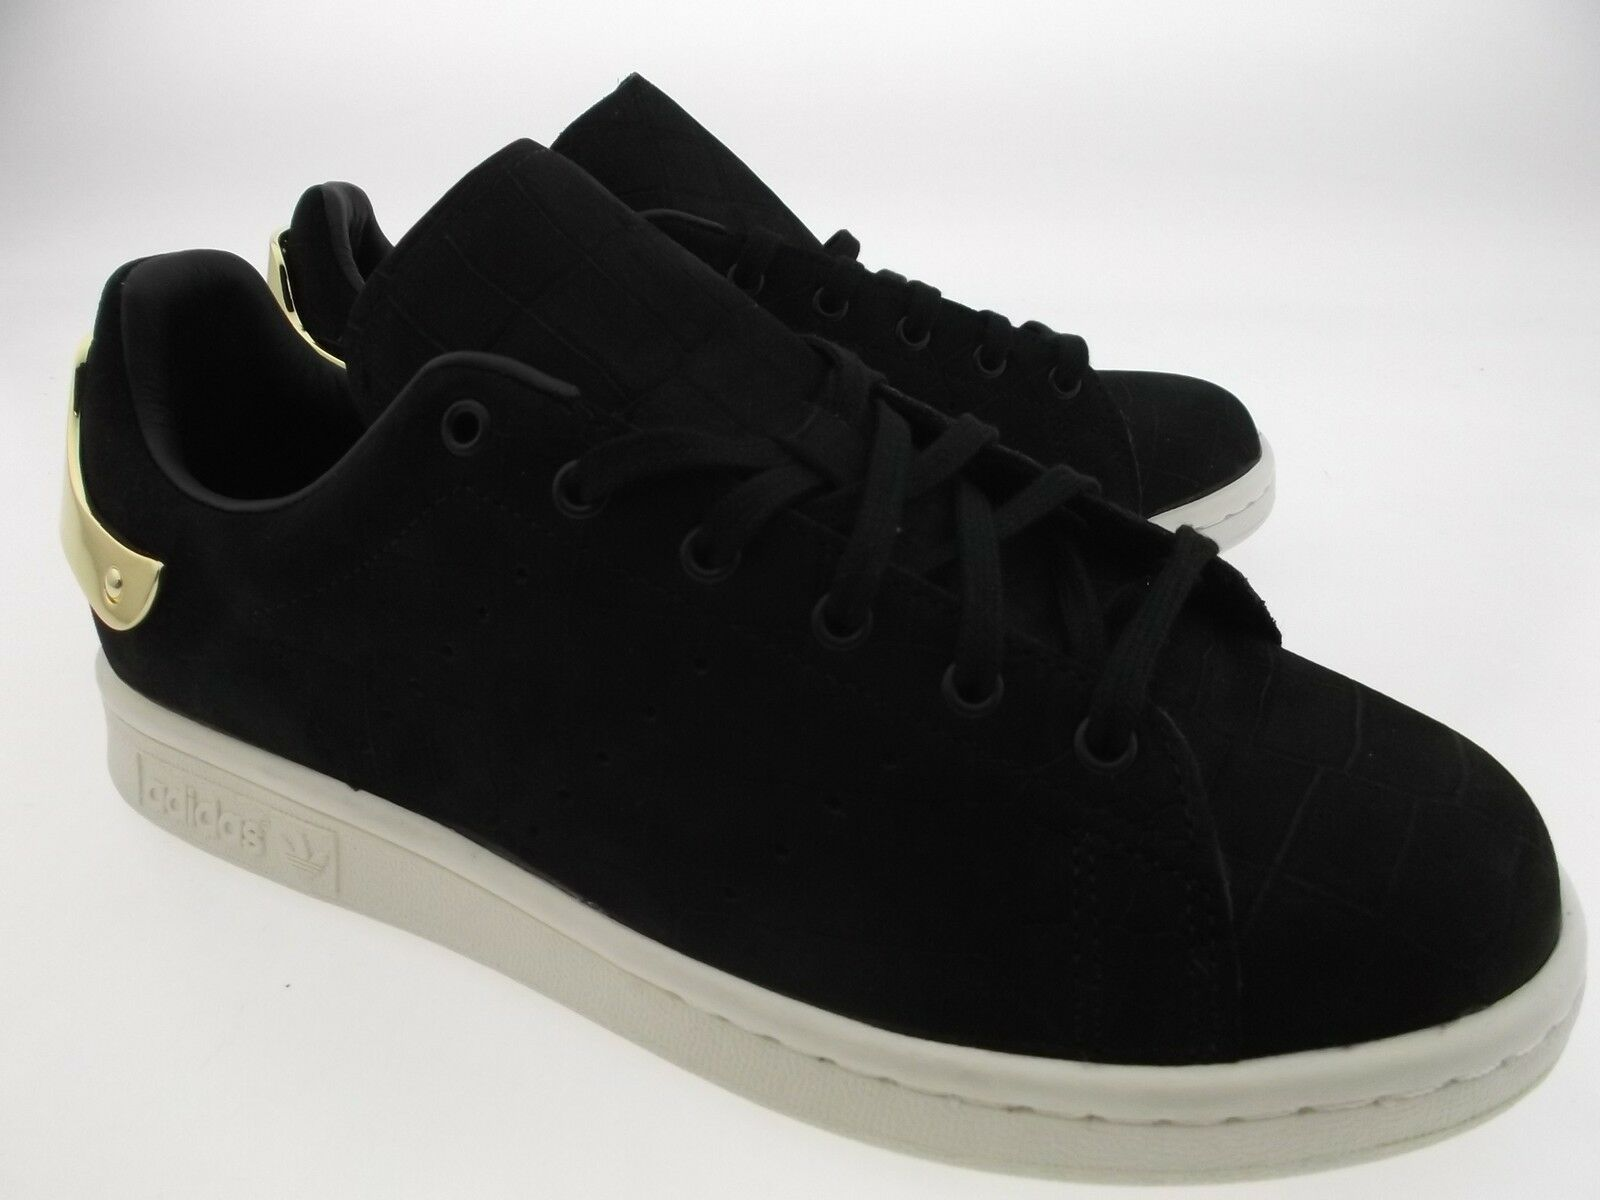 150 metall adidas frauen stan smith metall 150 schwarzes gold s82482 sz 6 8 9 aa2762